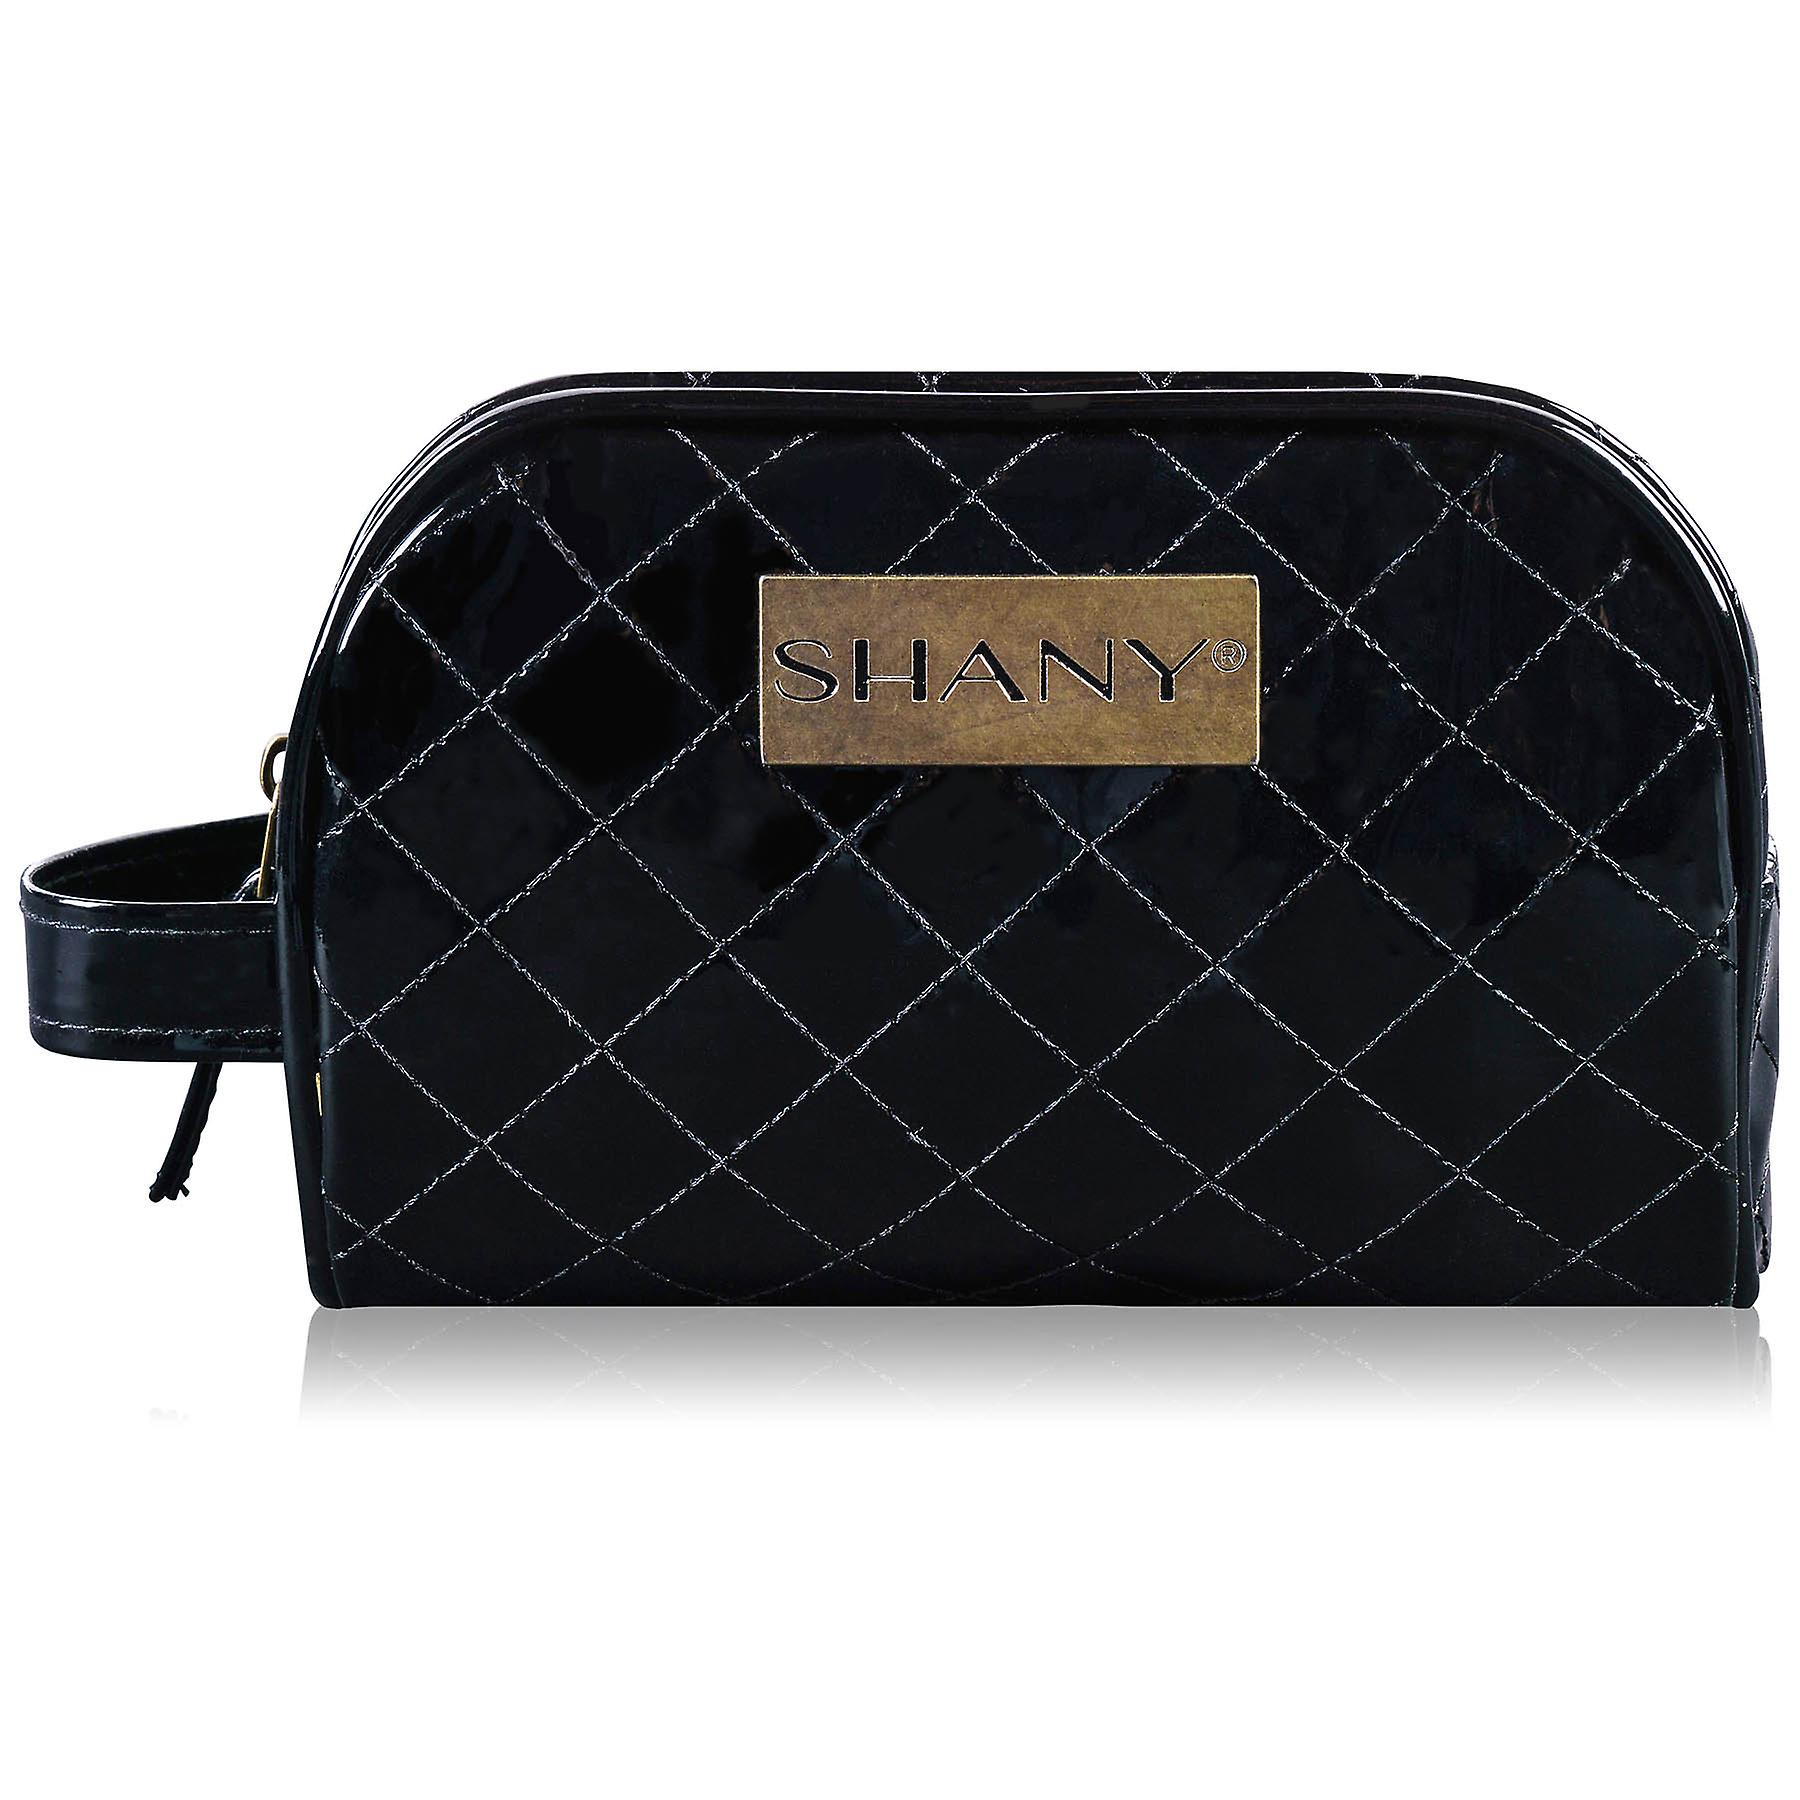 SHANY Quilted Travel Cosmetic Bag – Faux Patent Leather Zipper Organizer with Two Interior Pockets and Exterior Handle - BLACK